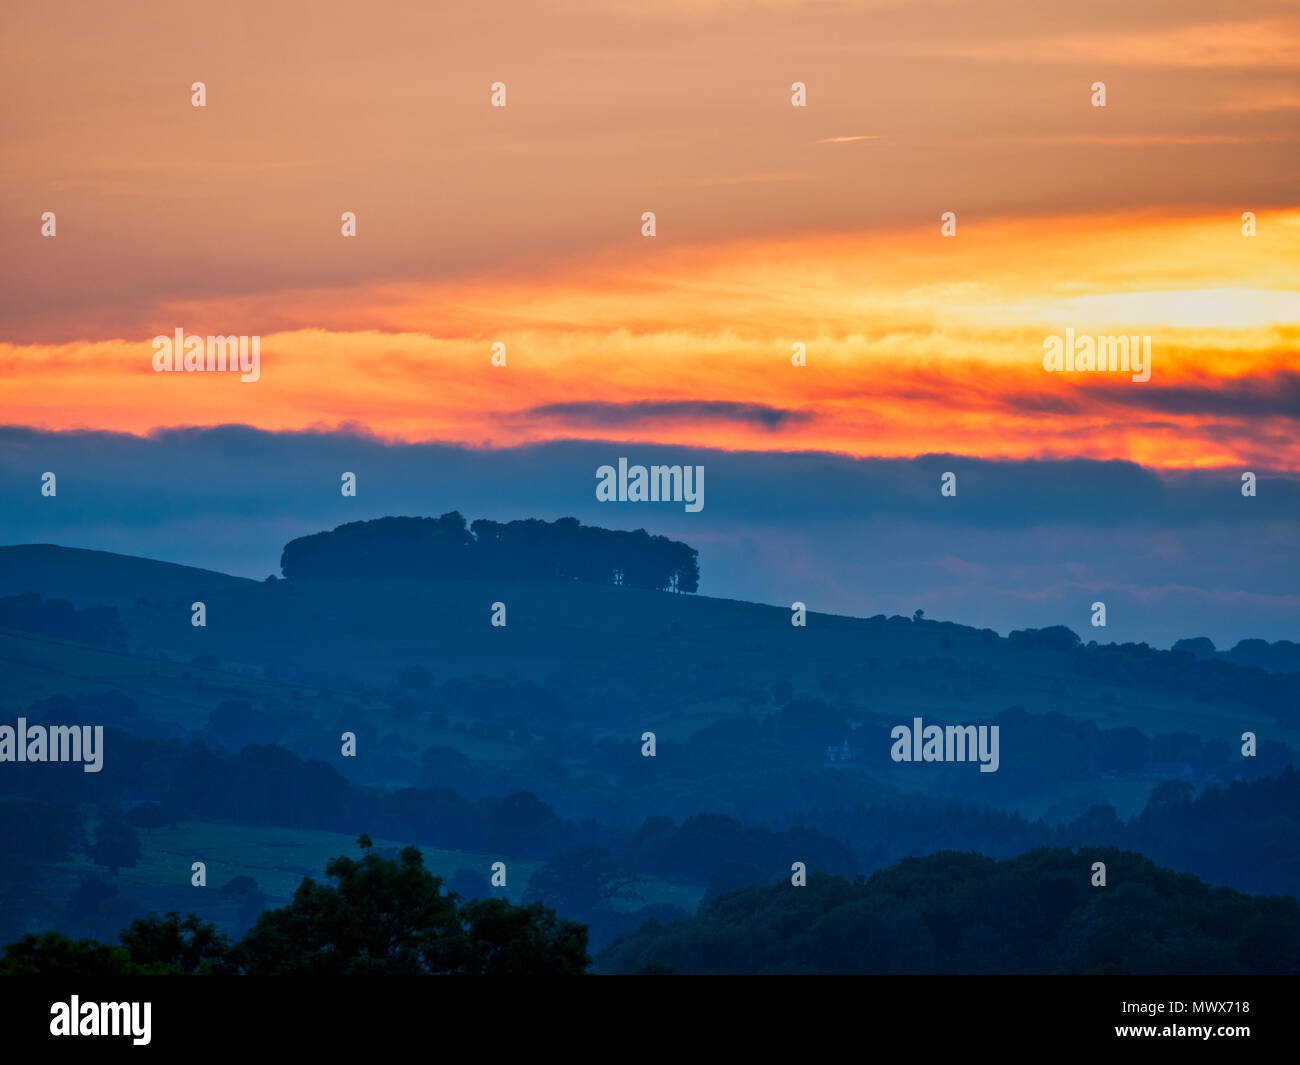 Hazleton Clump Cairn, Ashbourne. 2nd Jun, 2018. UK Weather: spectacular sunset over the ancient woods Hazleton Clump Cairn near Thorpe taken from Ashbourne Derbyshire, Peak District National Park Credit: Doug Blane/Alamy Live NewsStock Photo